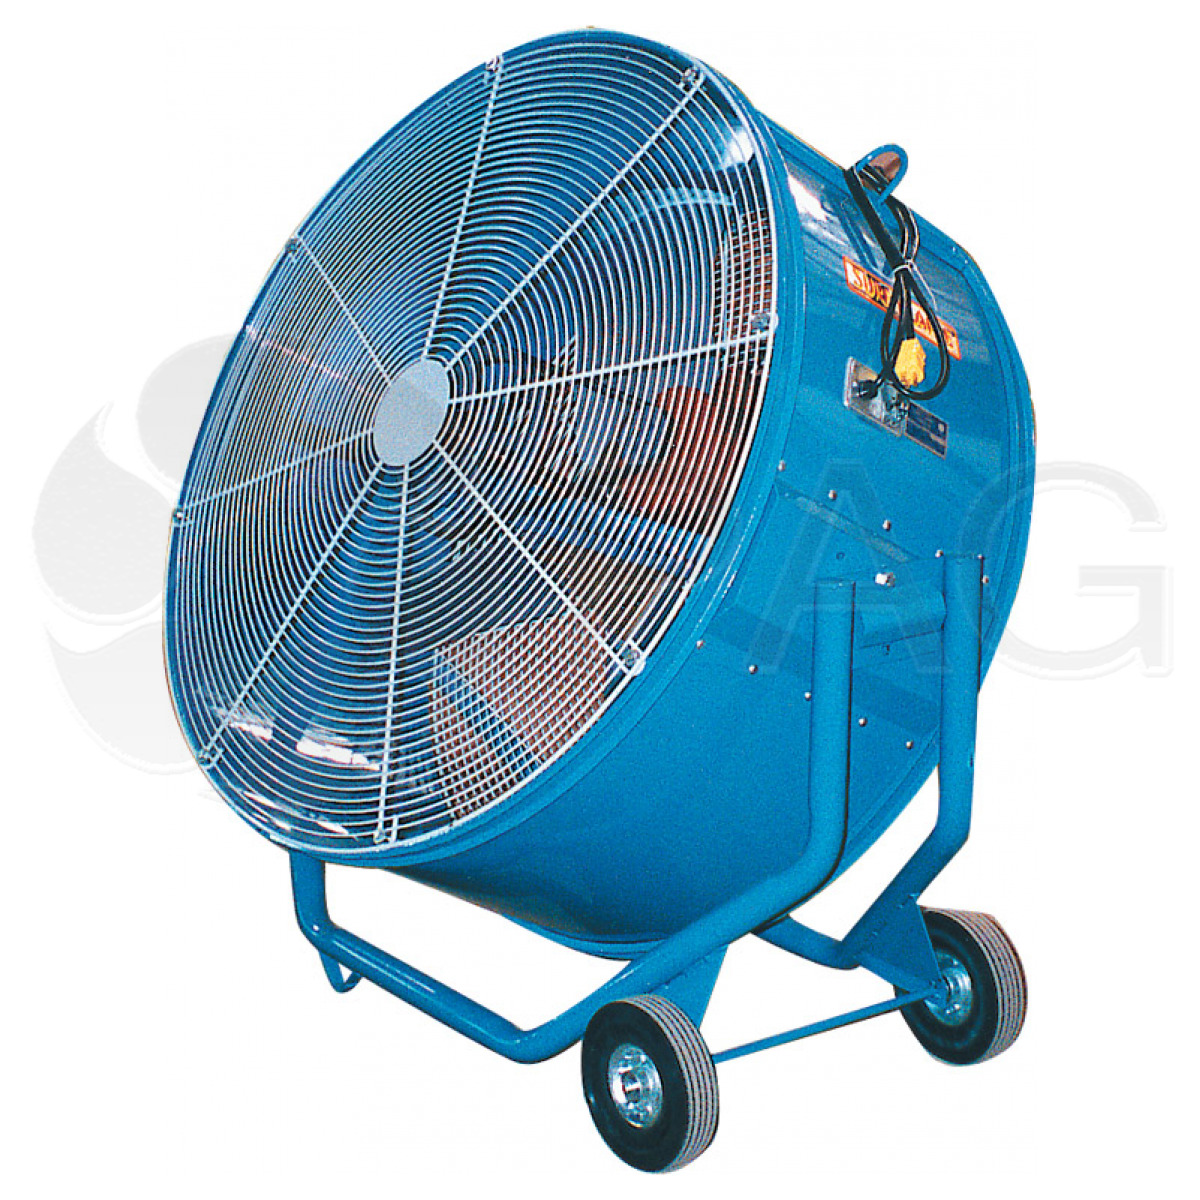 Heat Wagon FN42 - Adjusts to seven different airflow directions